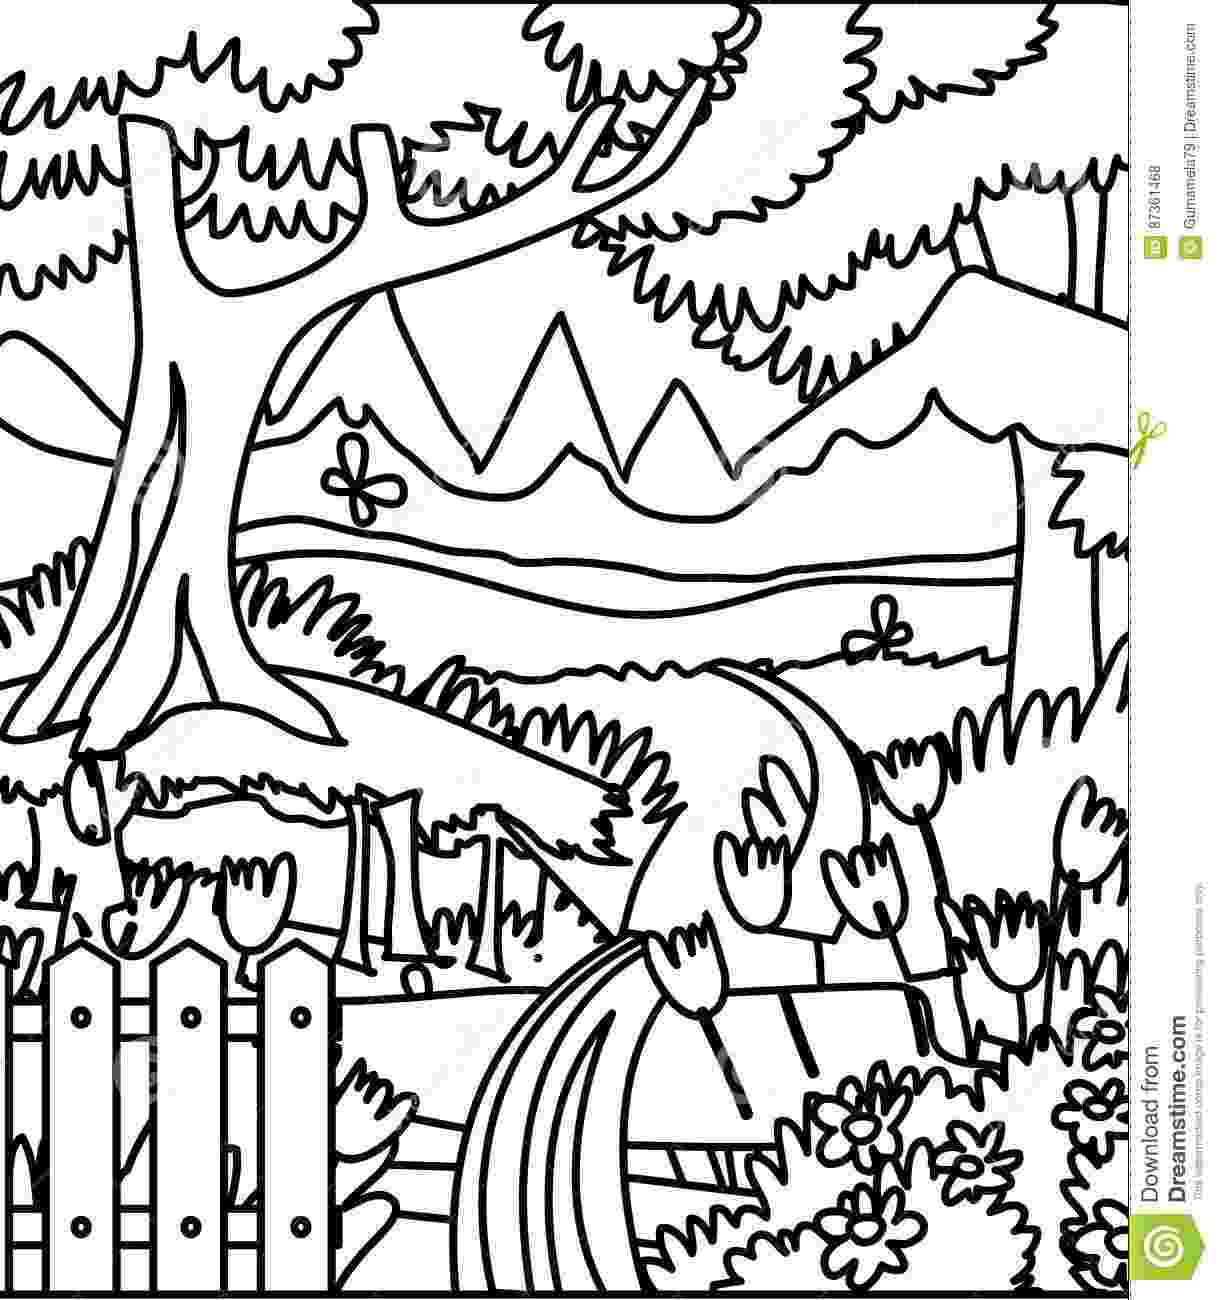 forest coloring sheets forest coloring pages download and print forest coloring forest coloring sheets